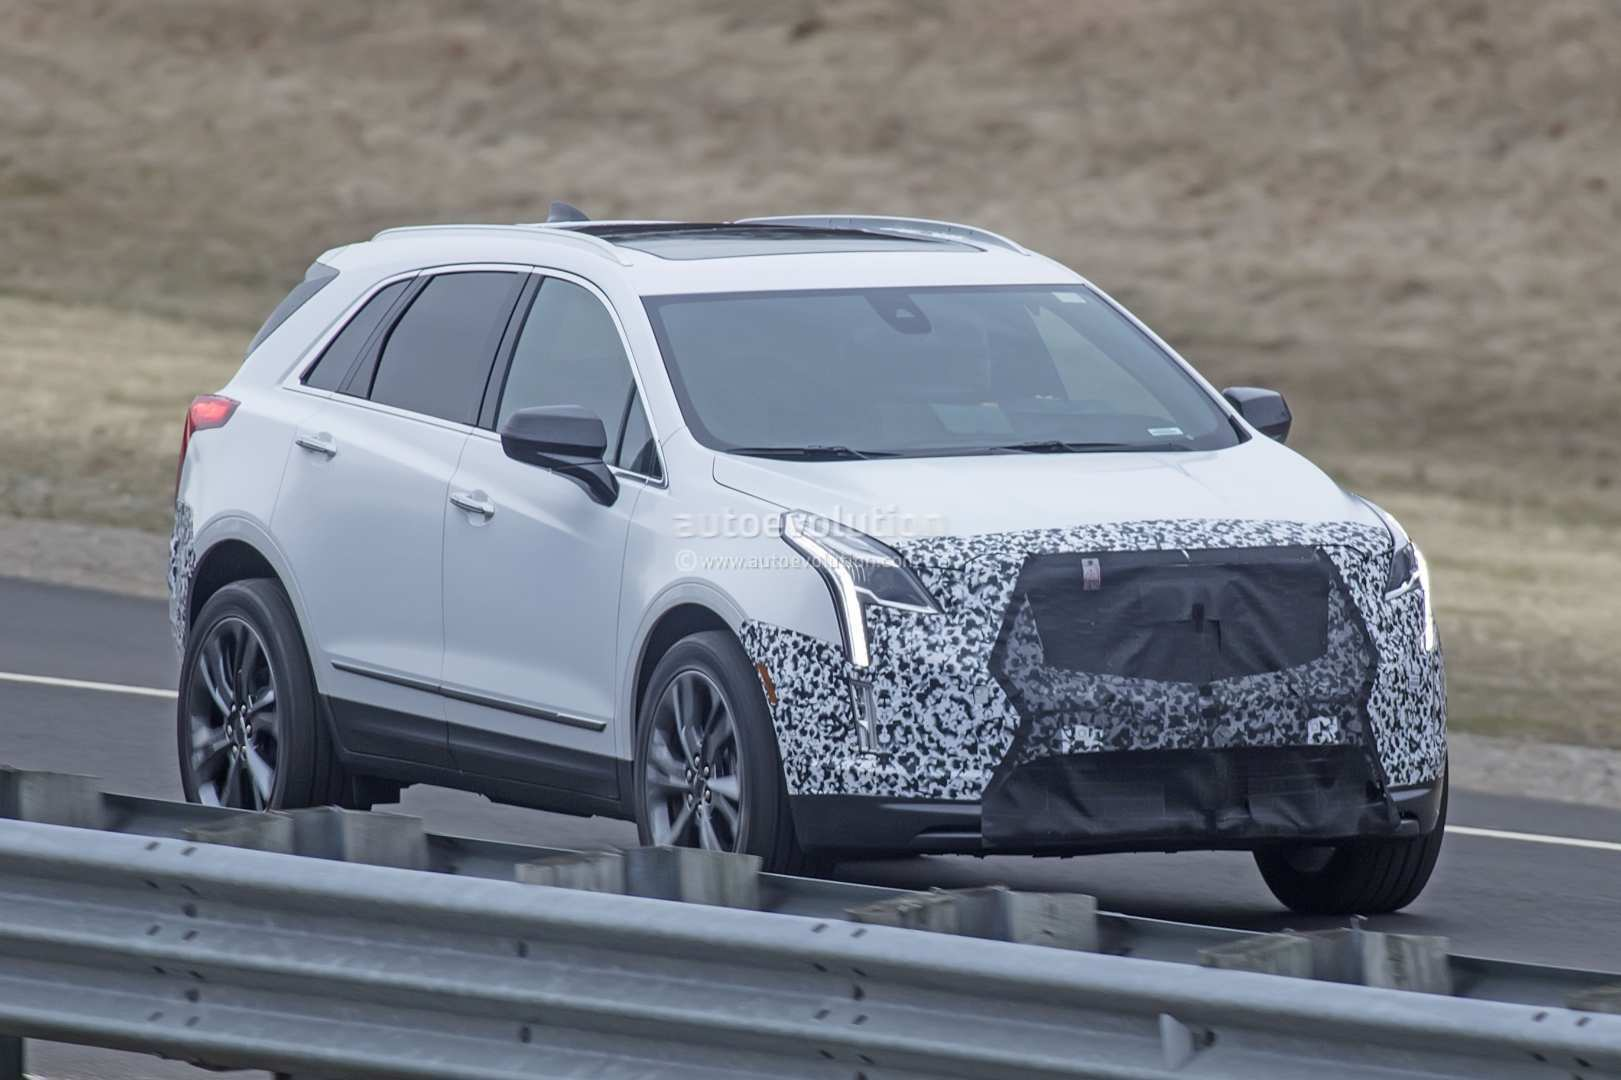 61 All New 2020 Cadillac XT5 History by 2020 Cadillac XT5